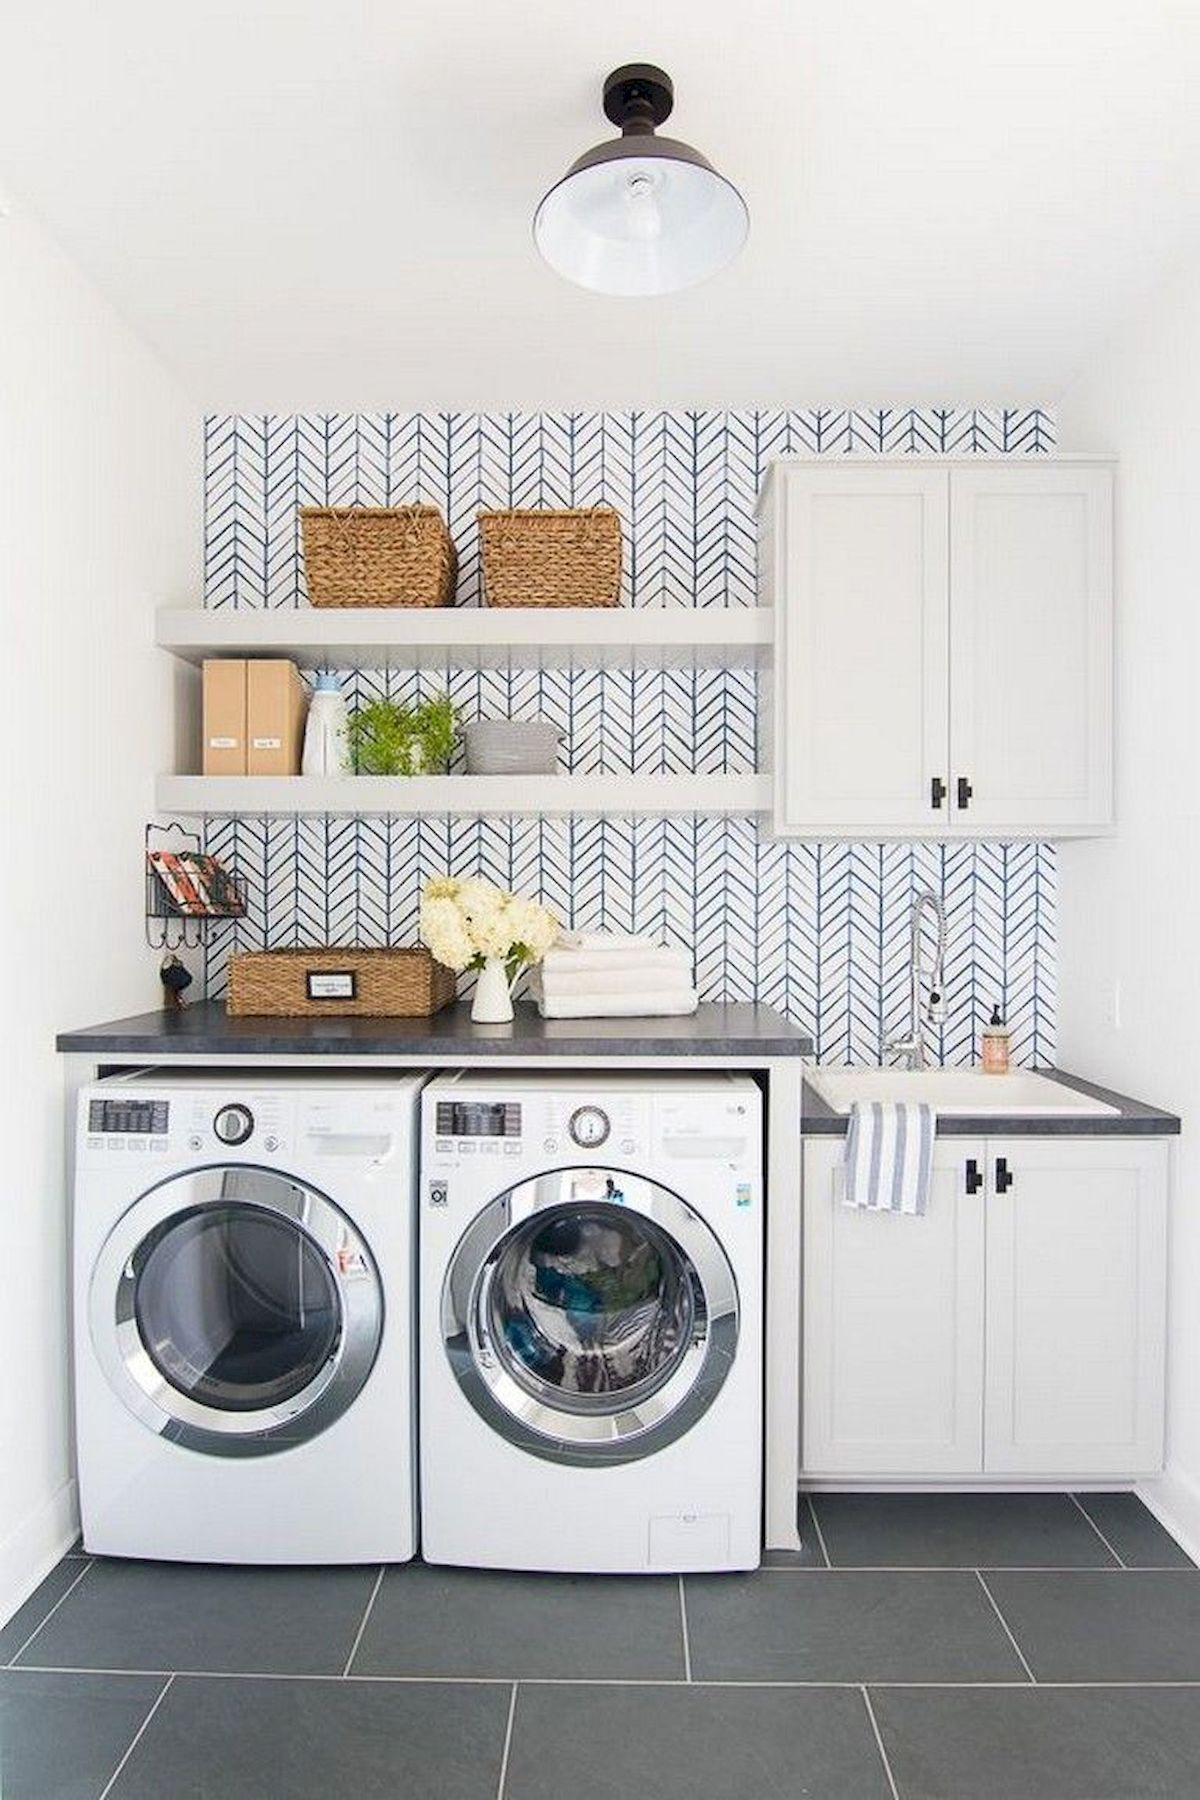 55 Best Small Laundry Room Photo Storage Ideas 55 Laundry Room